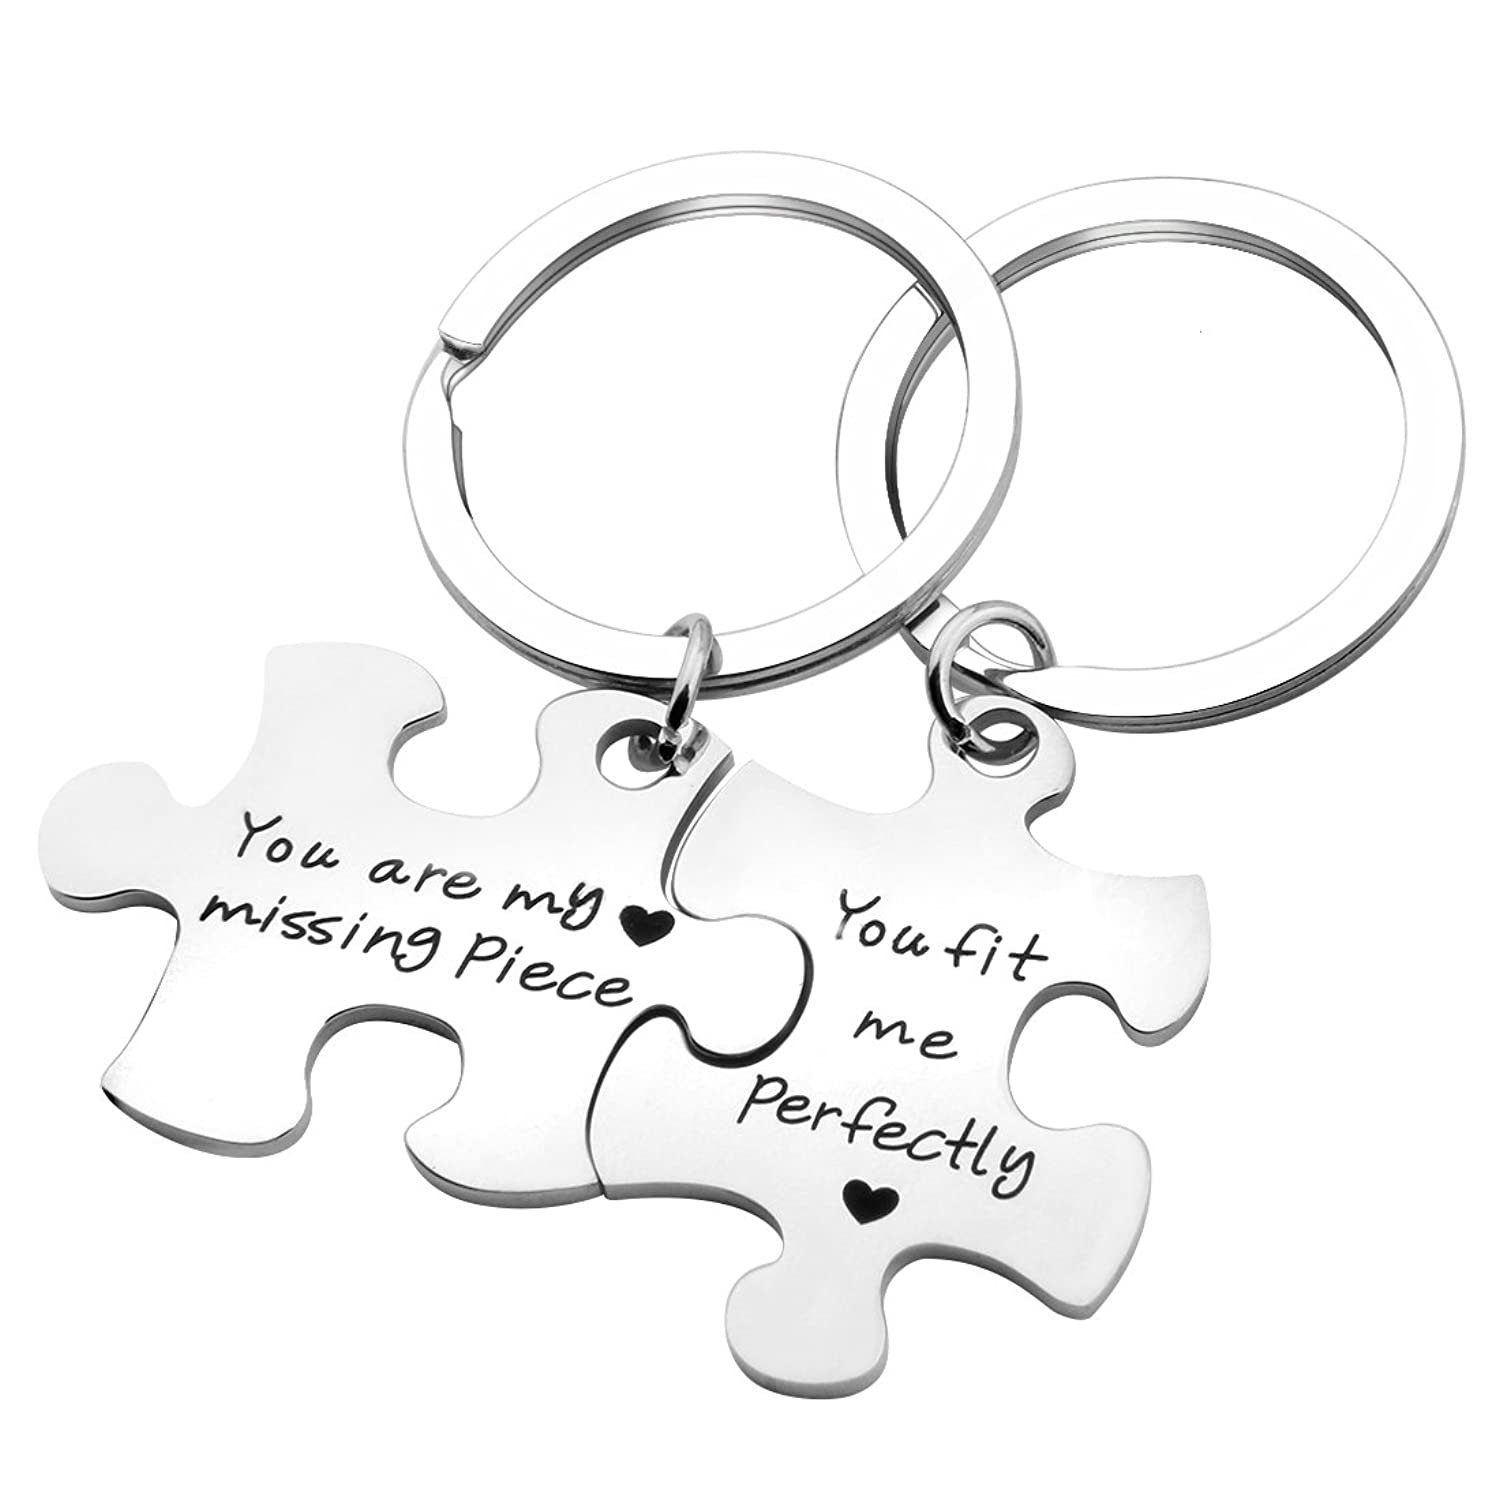 Ensianth Puzzle Jewelry Couple Gift You Are My Missing Piece,You Fit Me Perfectly Necklace and Keyring Set Of Two